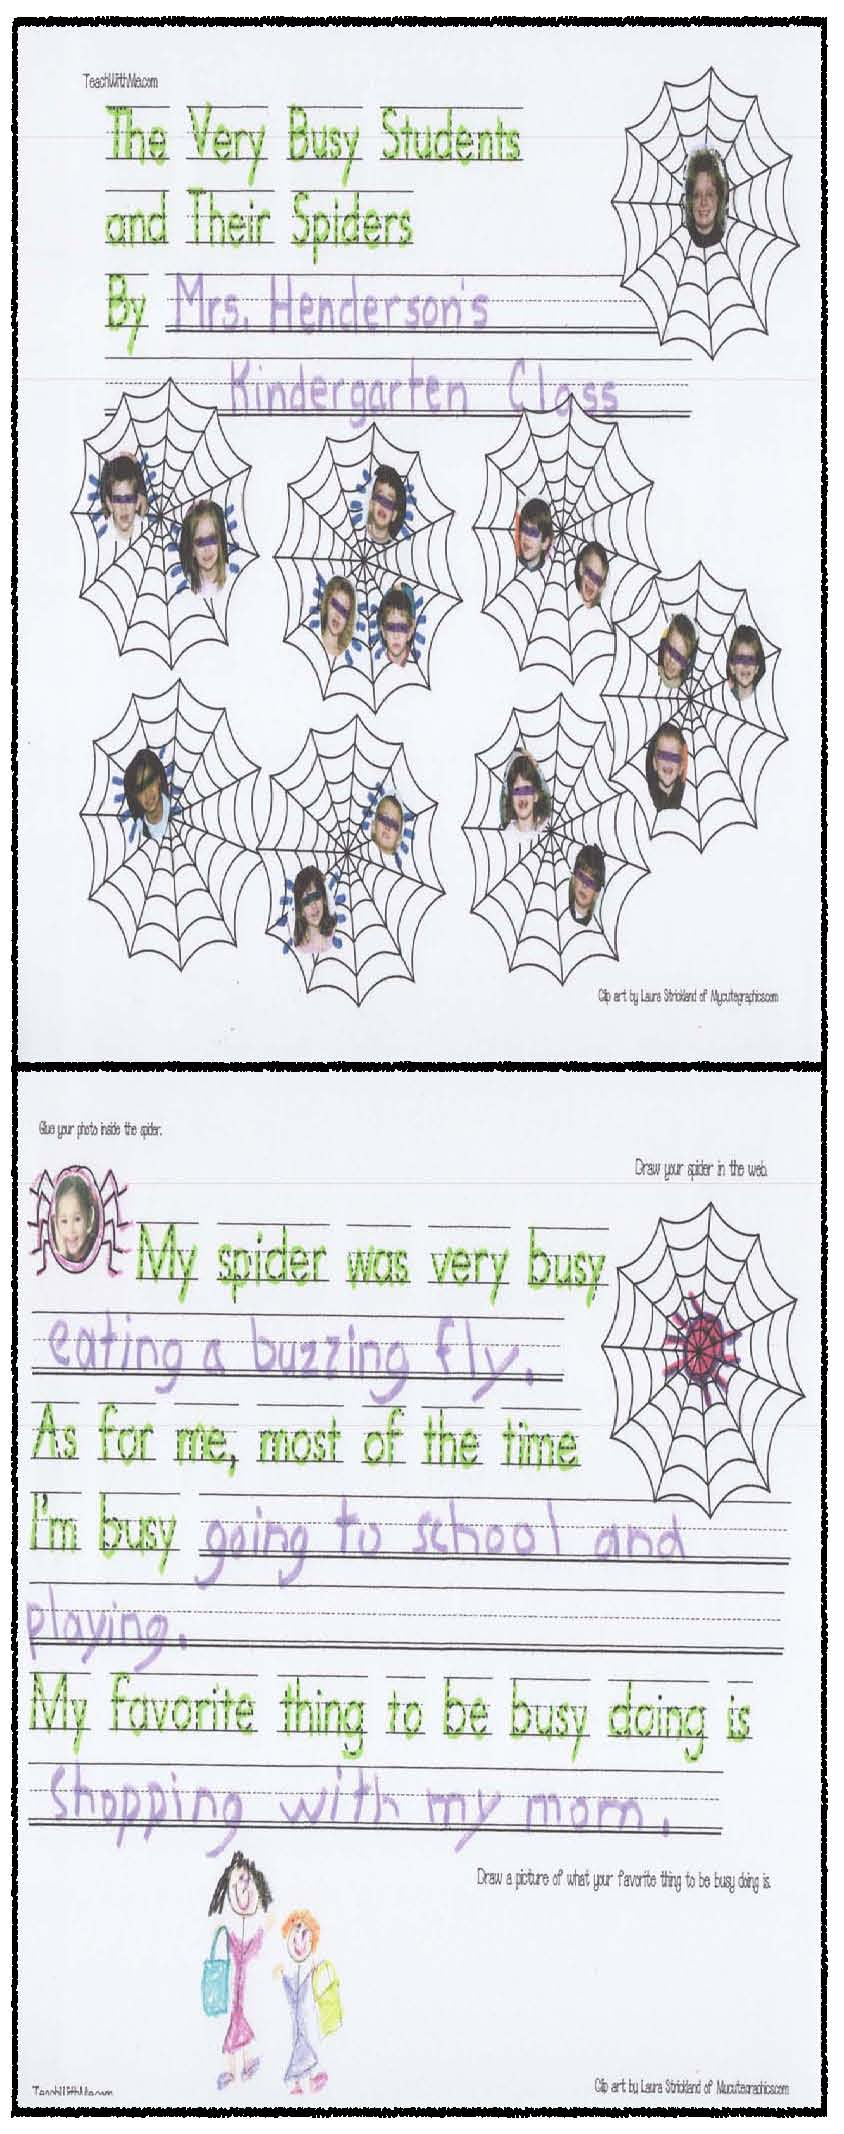 spider activities, spider crafts, the very busy spider activities, correct the sentence, end punctuation activities, spider writing prompts, spider bulletin boards,